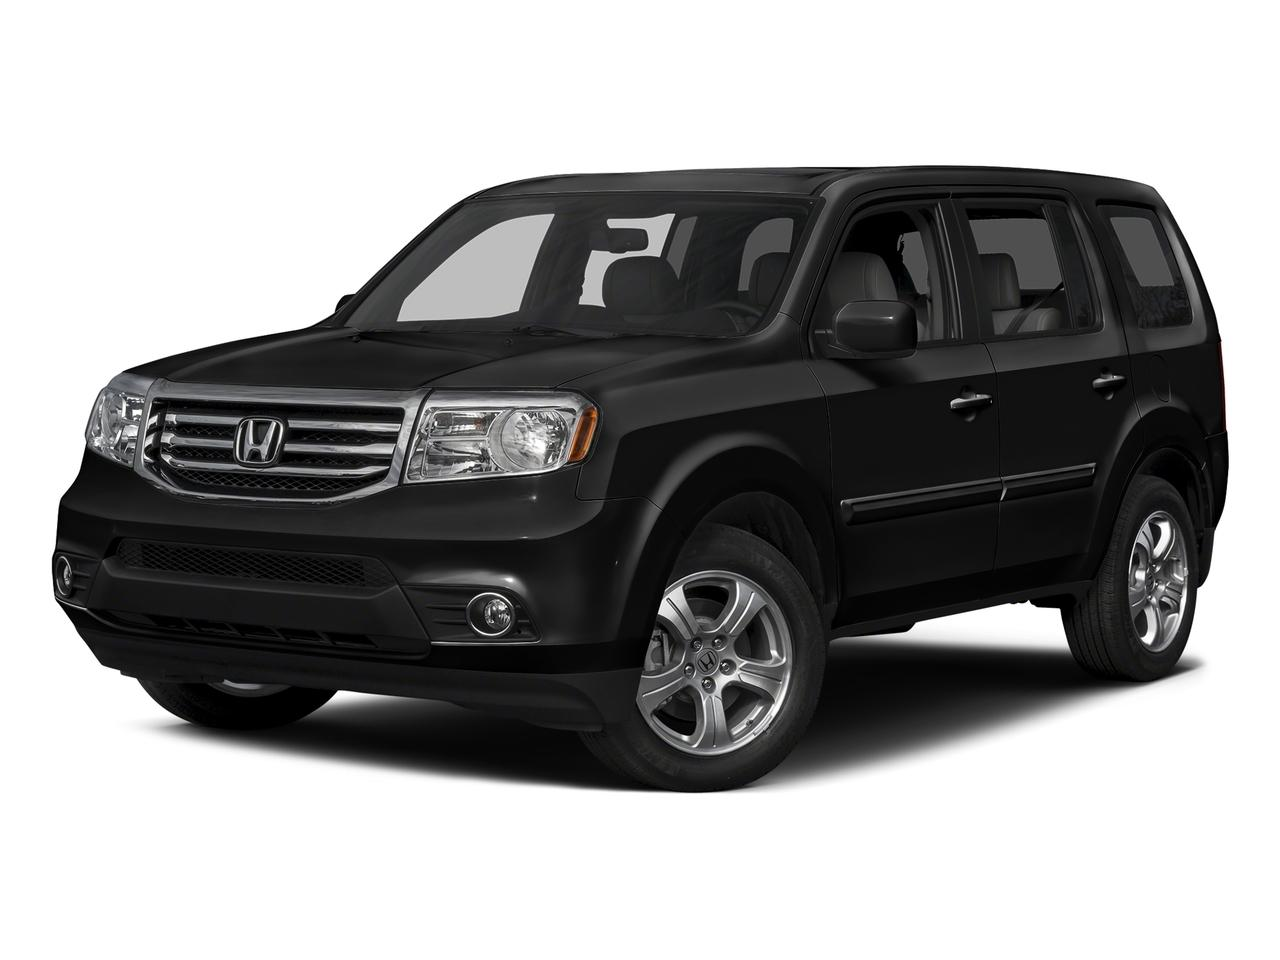 2015 Honda Pilot Vehicle Photo in Oklahoma City, OK 73114